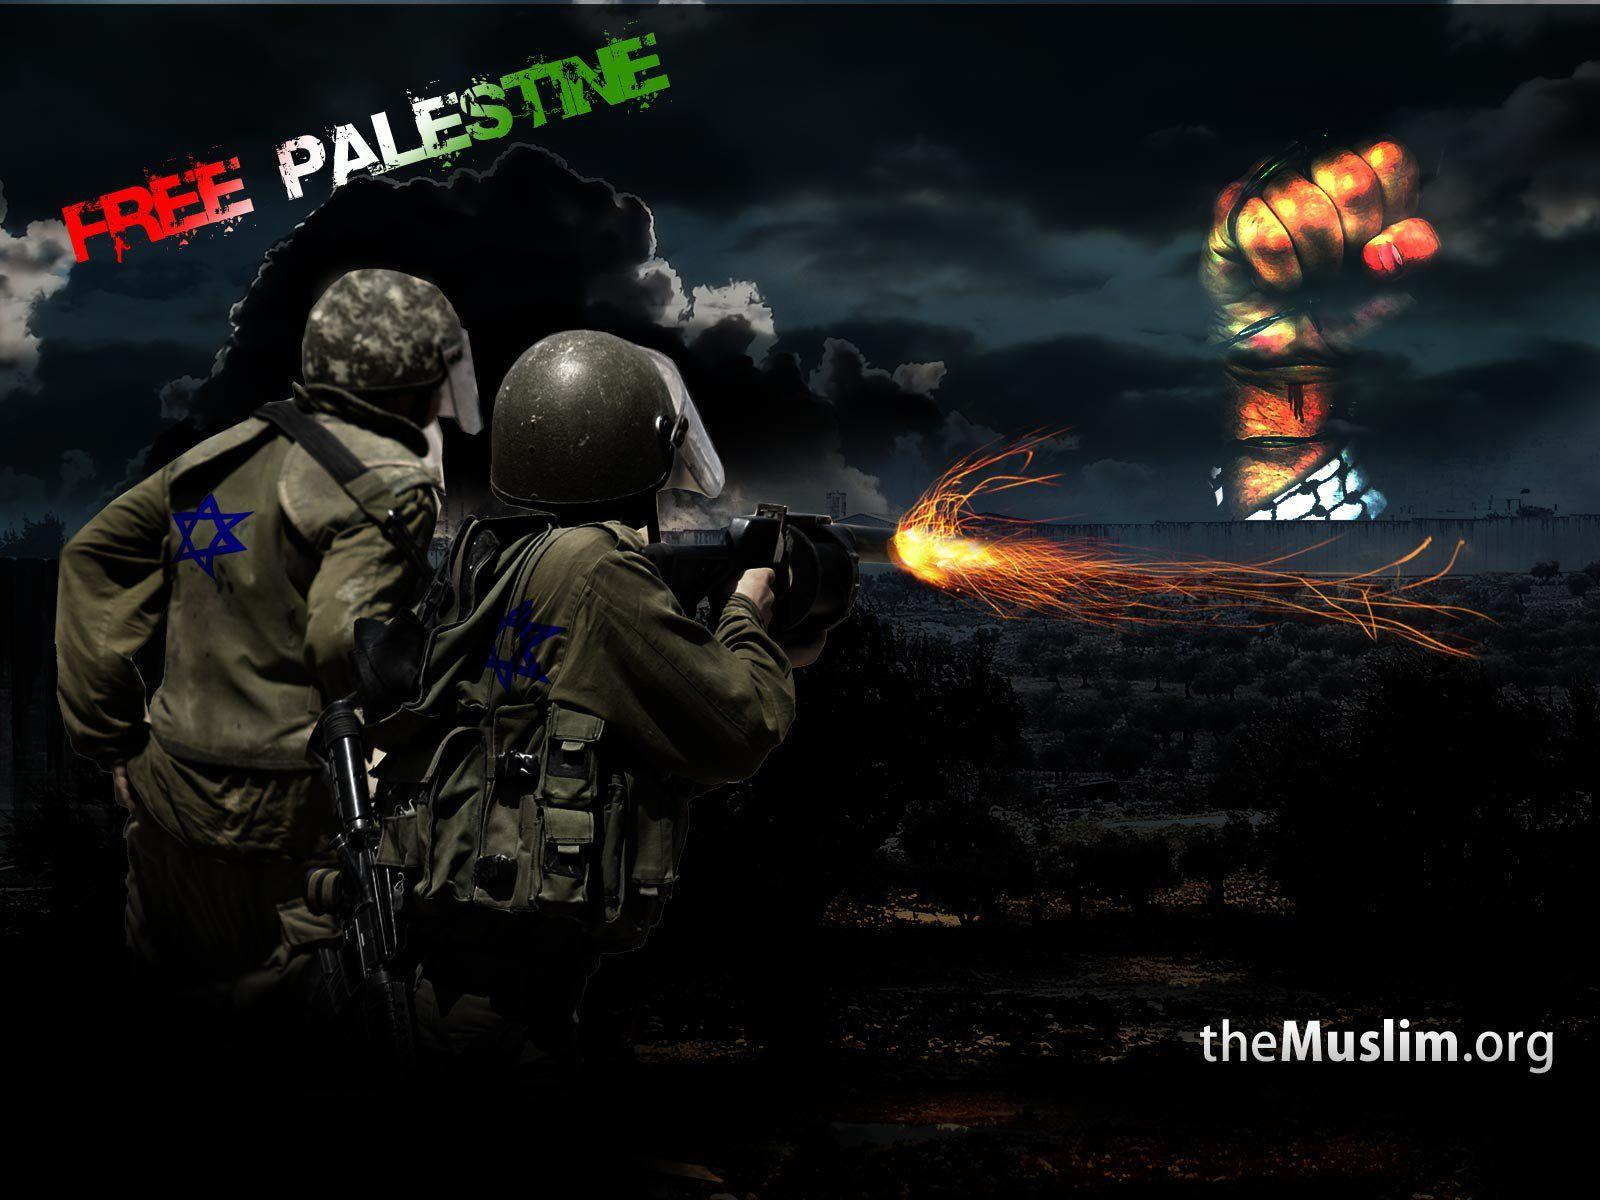 Tribute to Gaza, Palestine Wallpapers – Alhabib's Blog